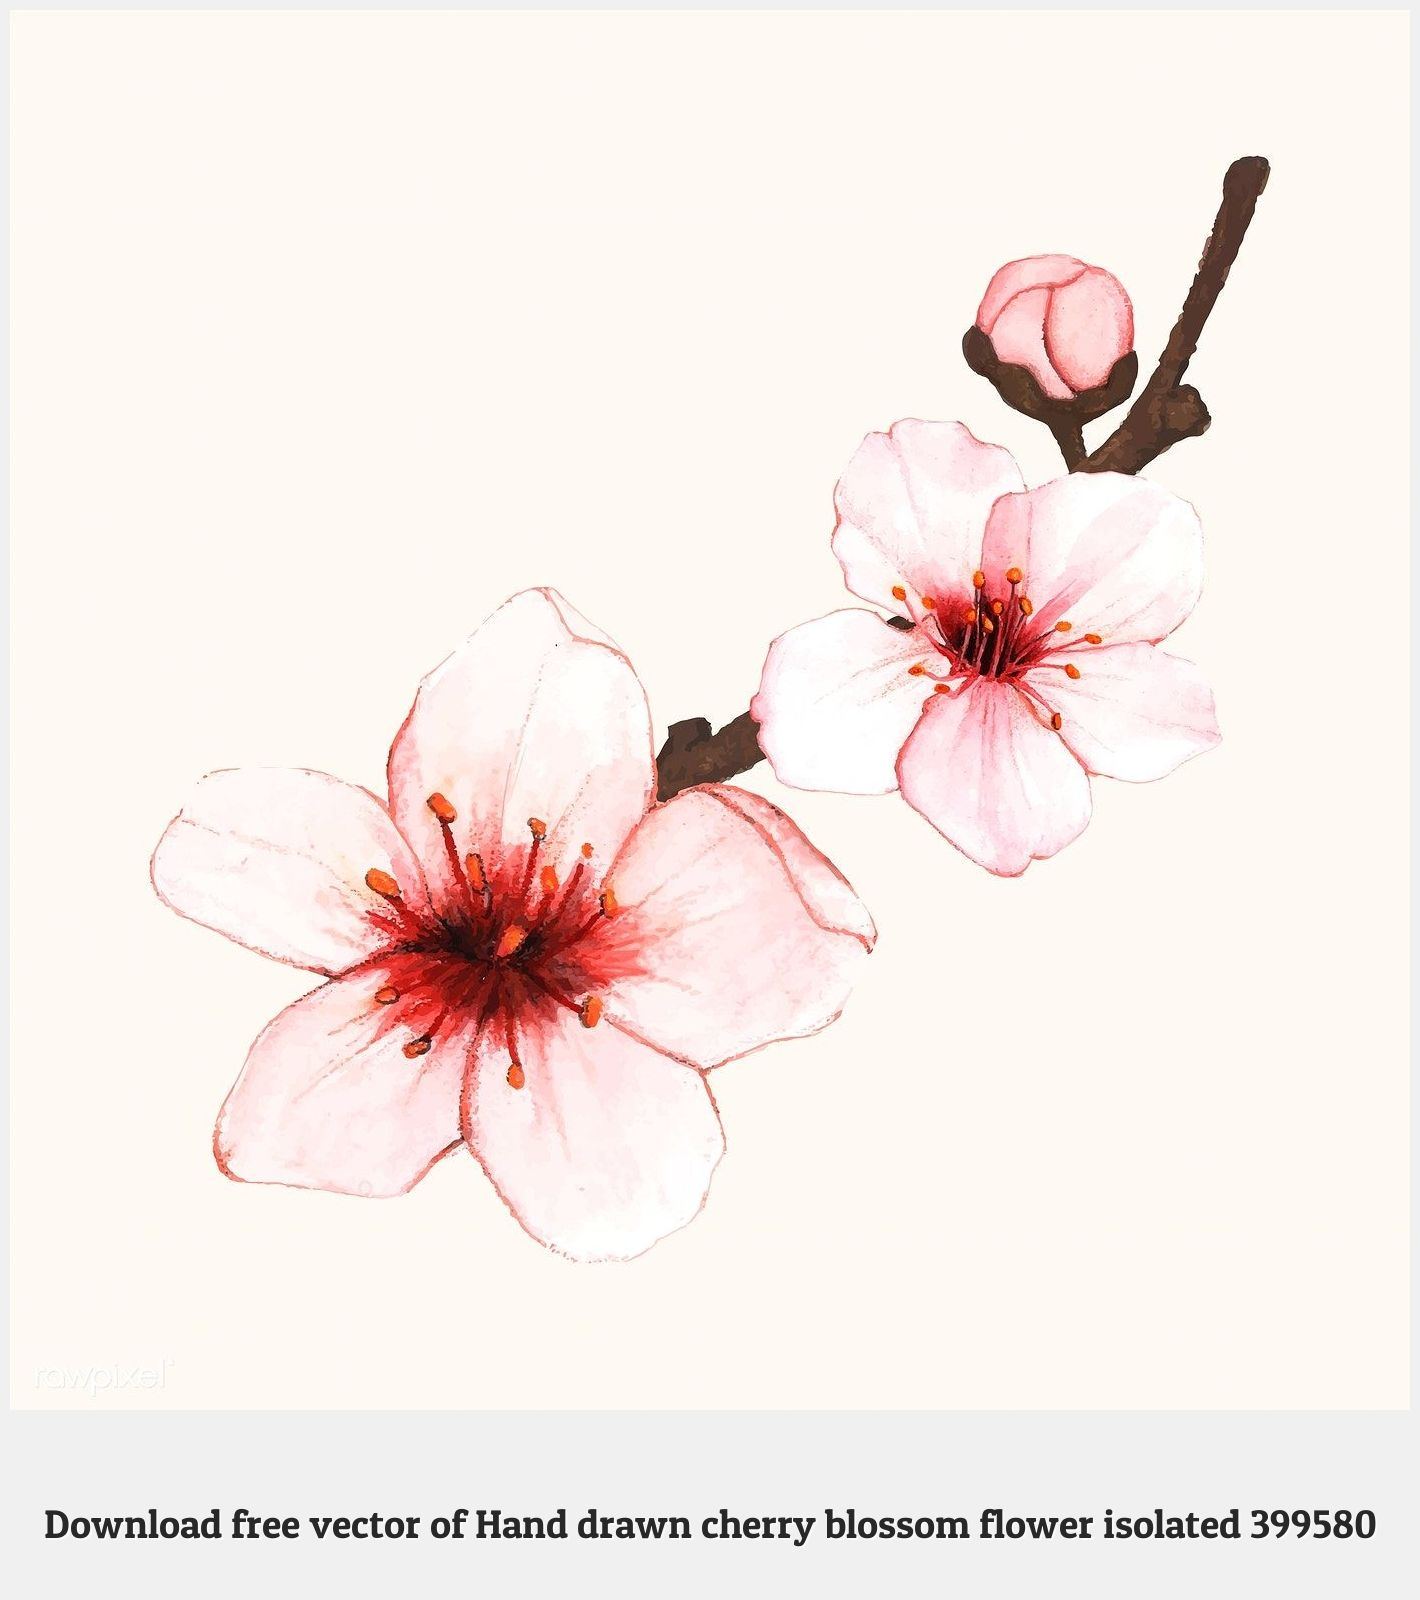 Cherry Blossom Tattoos 99329 Hand Drawn Cherry Blossom Flower Isolated Free Image By Rawpixel Com Aum Blossom Tree Tattoo Cherry Blossom Art Tree Sketches